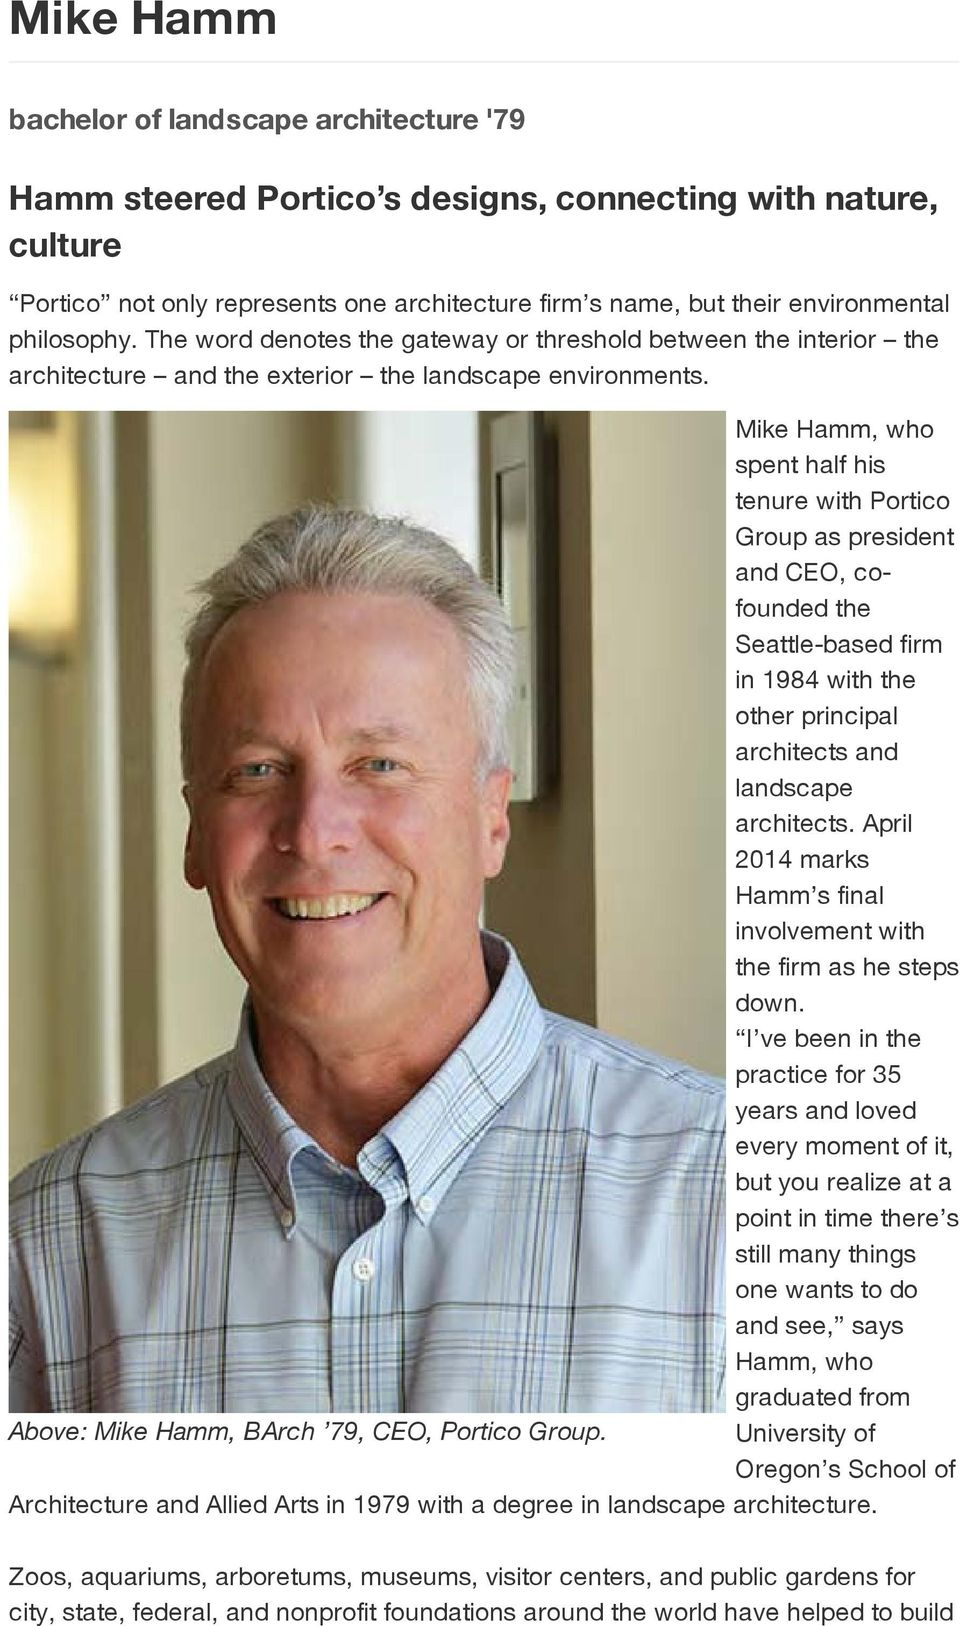 Mike Hamm, who spent half his tenure with Portico Group as president and CEO, cofounded the Seattle-based firm in 1984 with the other principal architects and landscape architects.